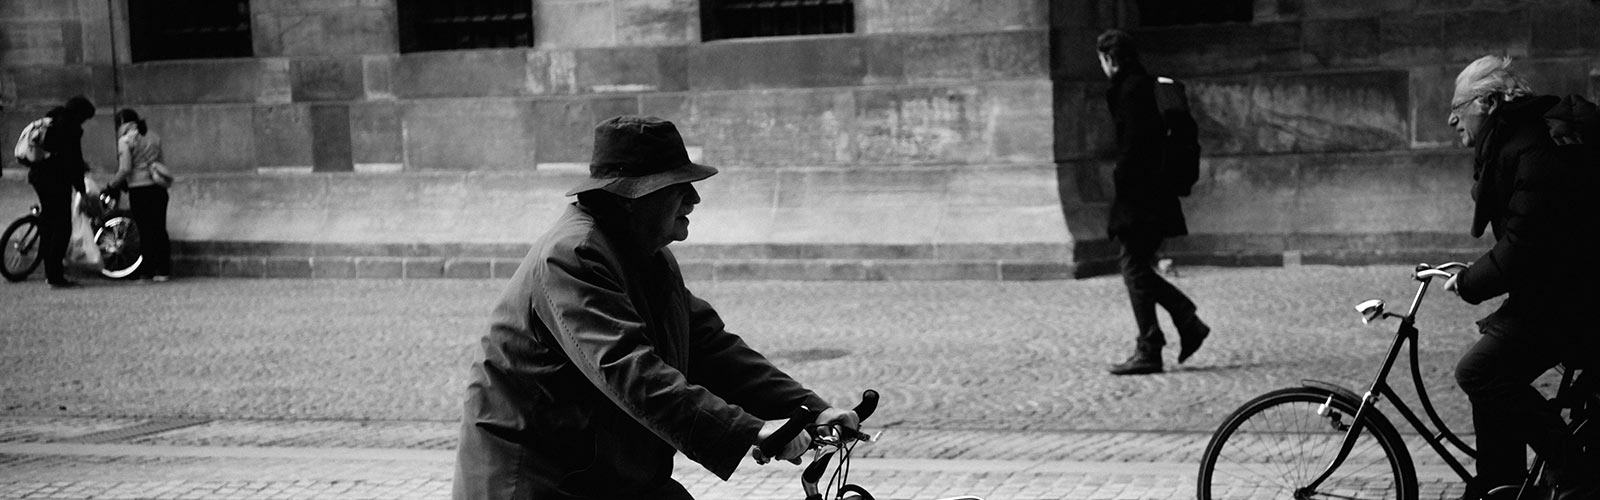 Bicycle Street Photography Autumn 2017